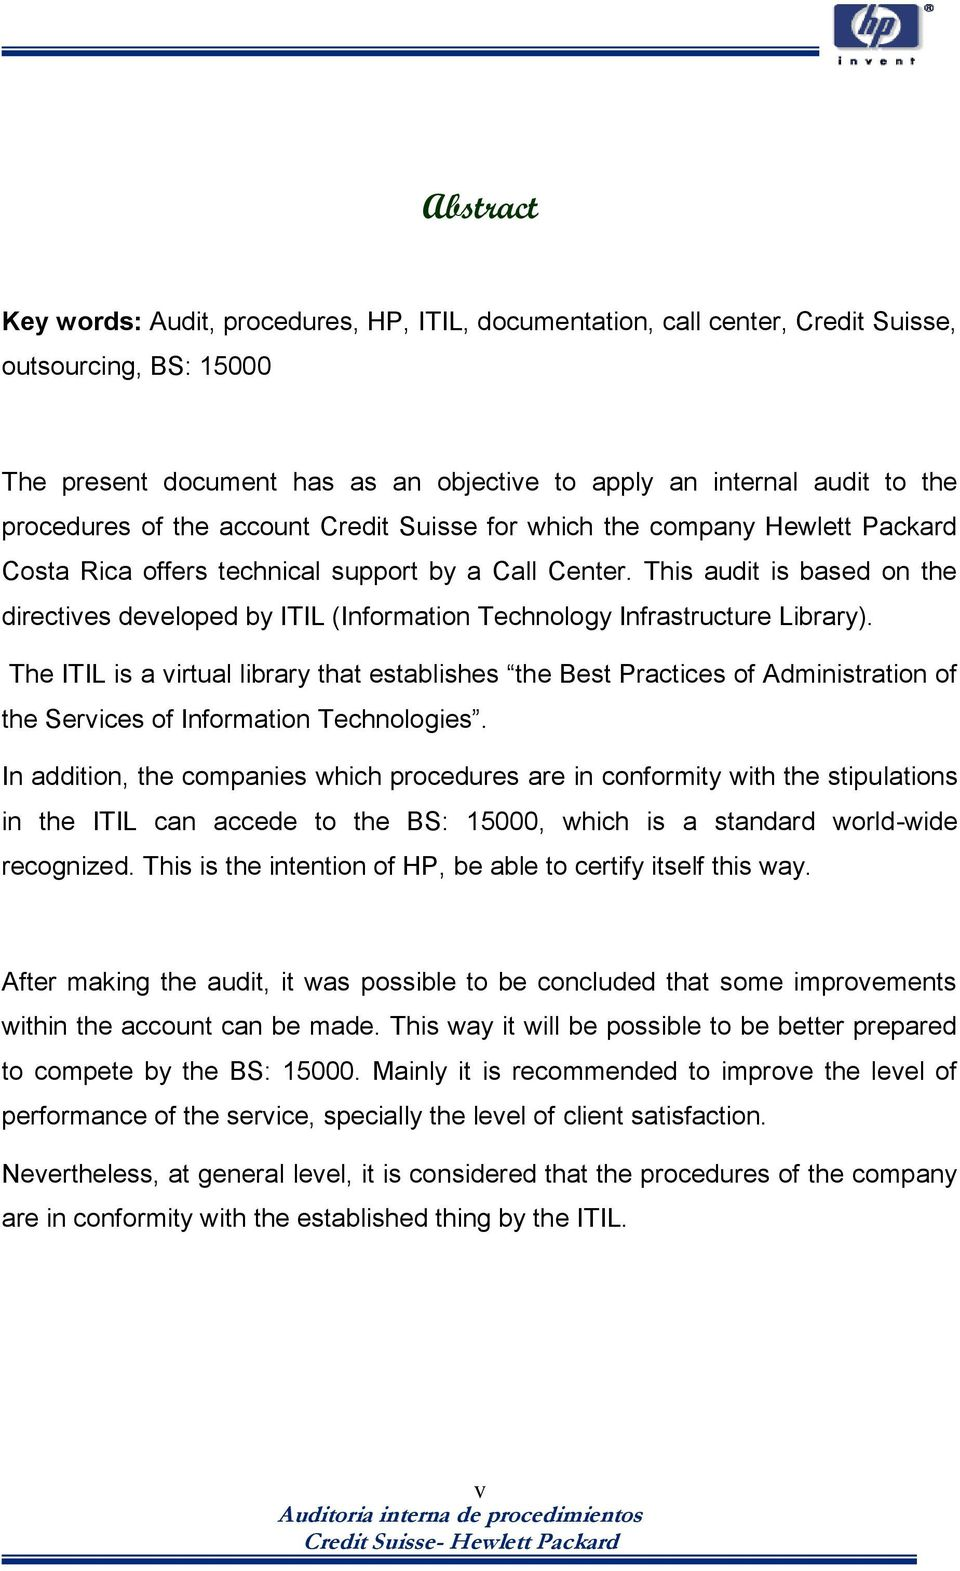 This audit is based on the directives developed by ITIL (Information Technology Infrastructure Library).